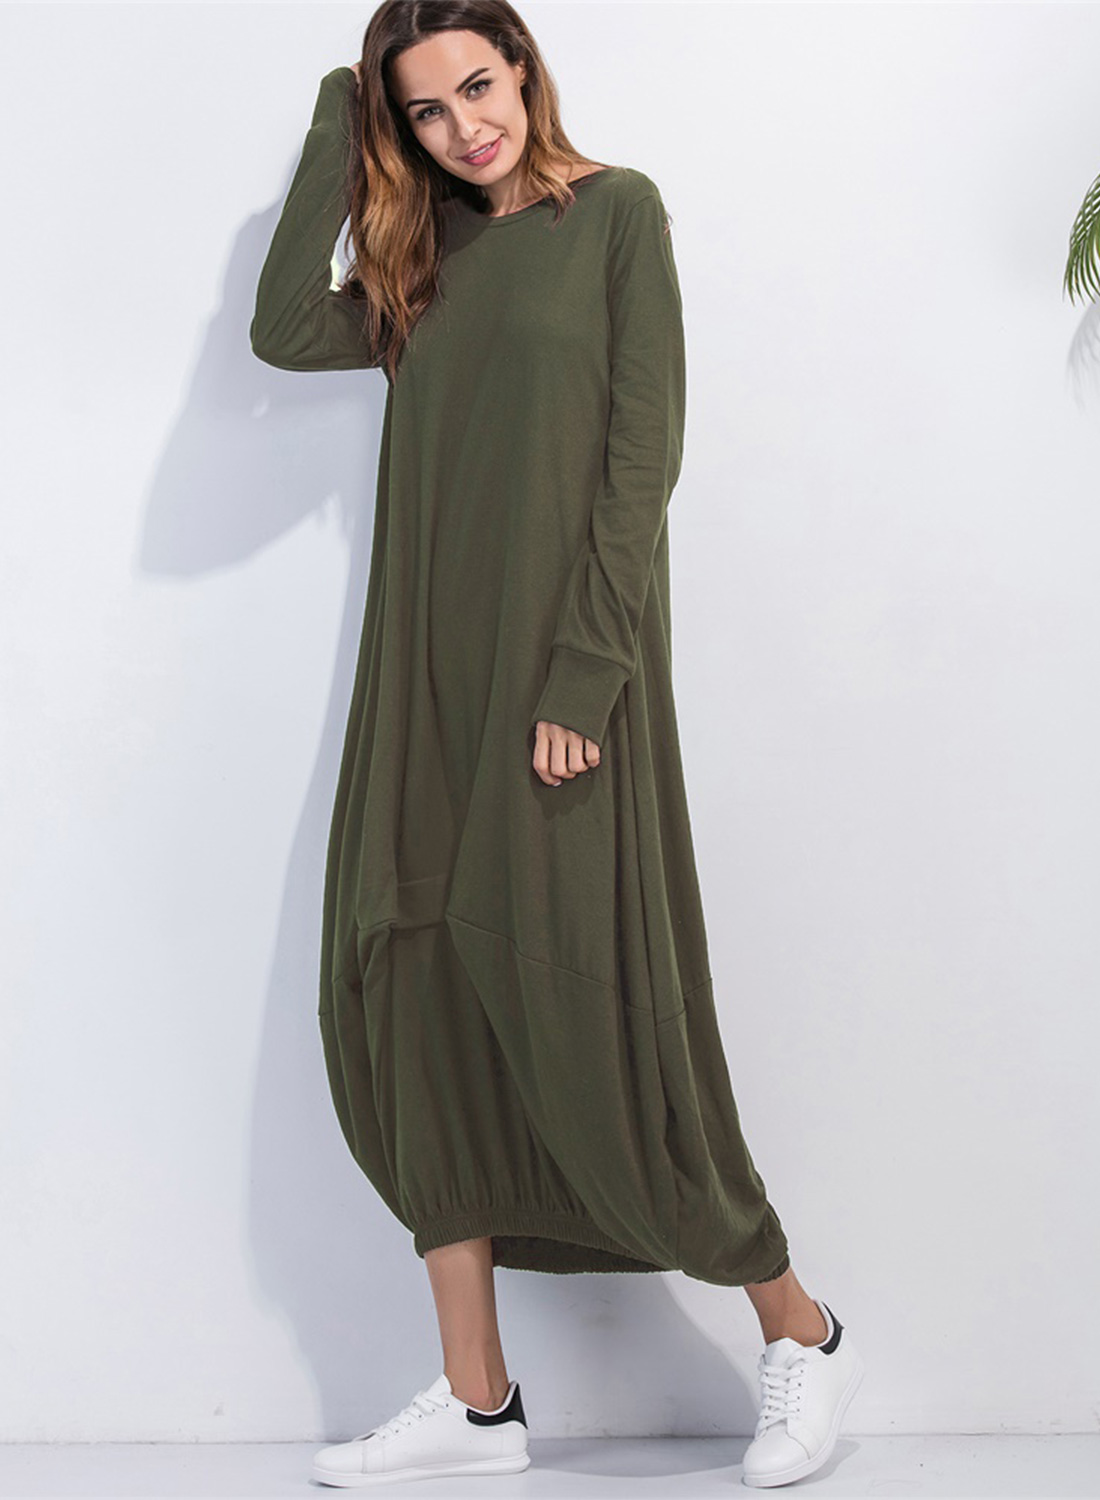 Women's Long Sleeve Loose Fit Solid Maxi Dress - STYLESIMO.com